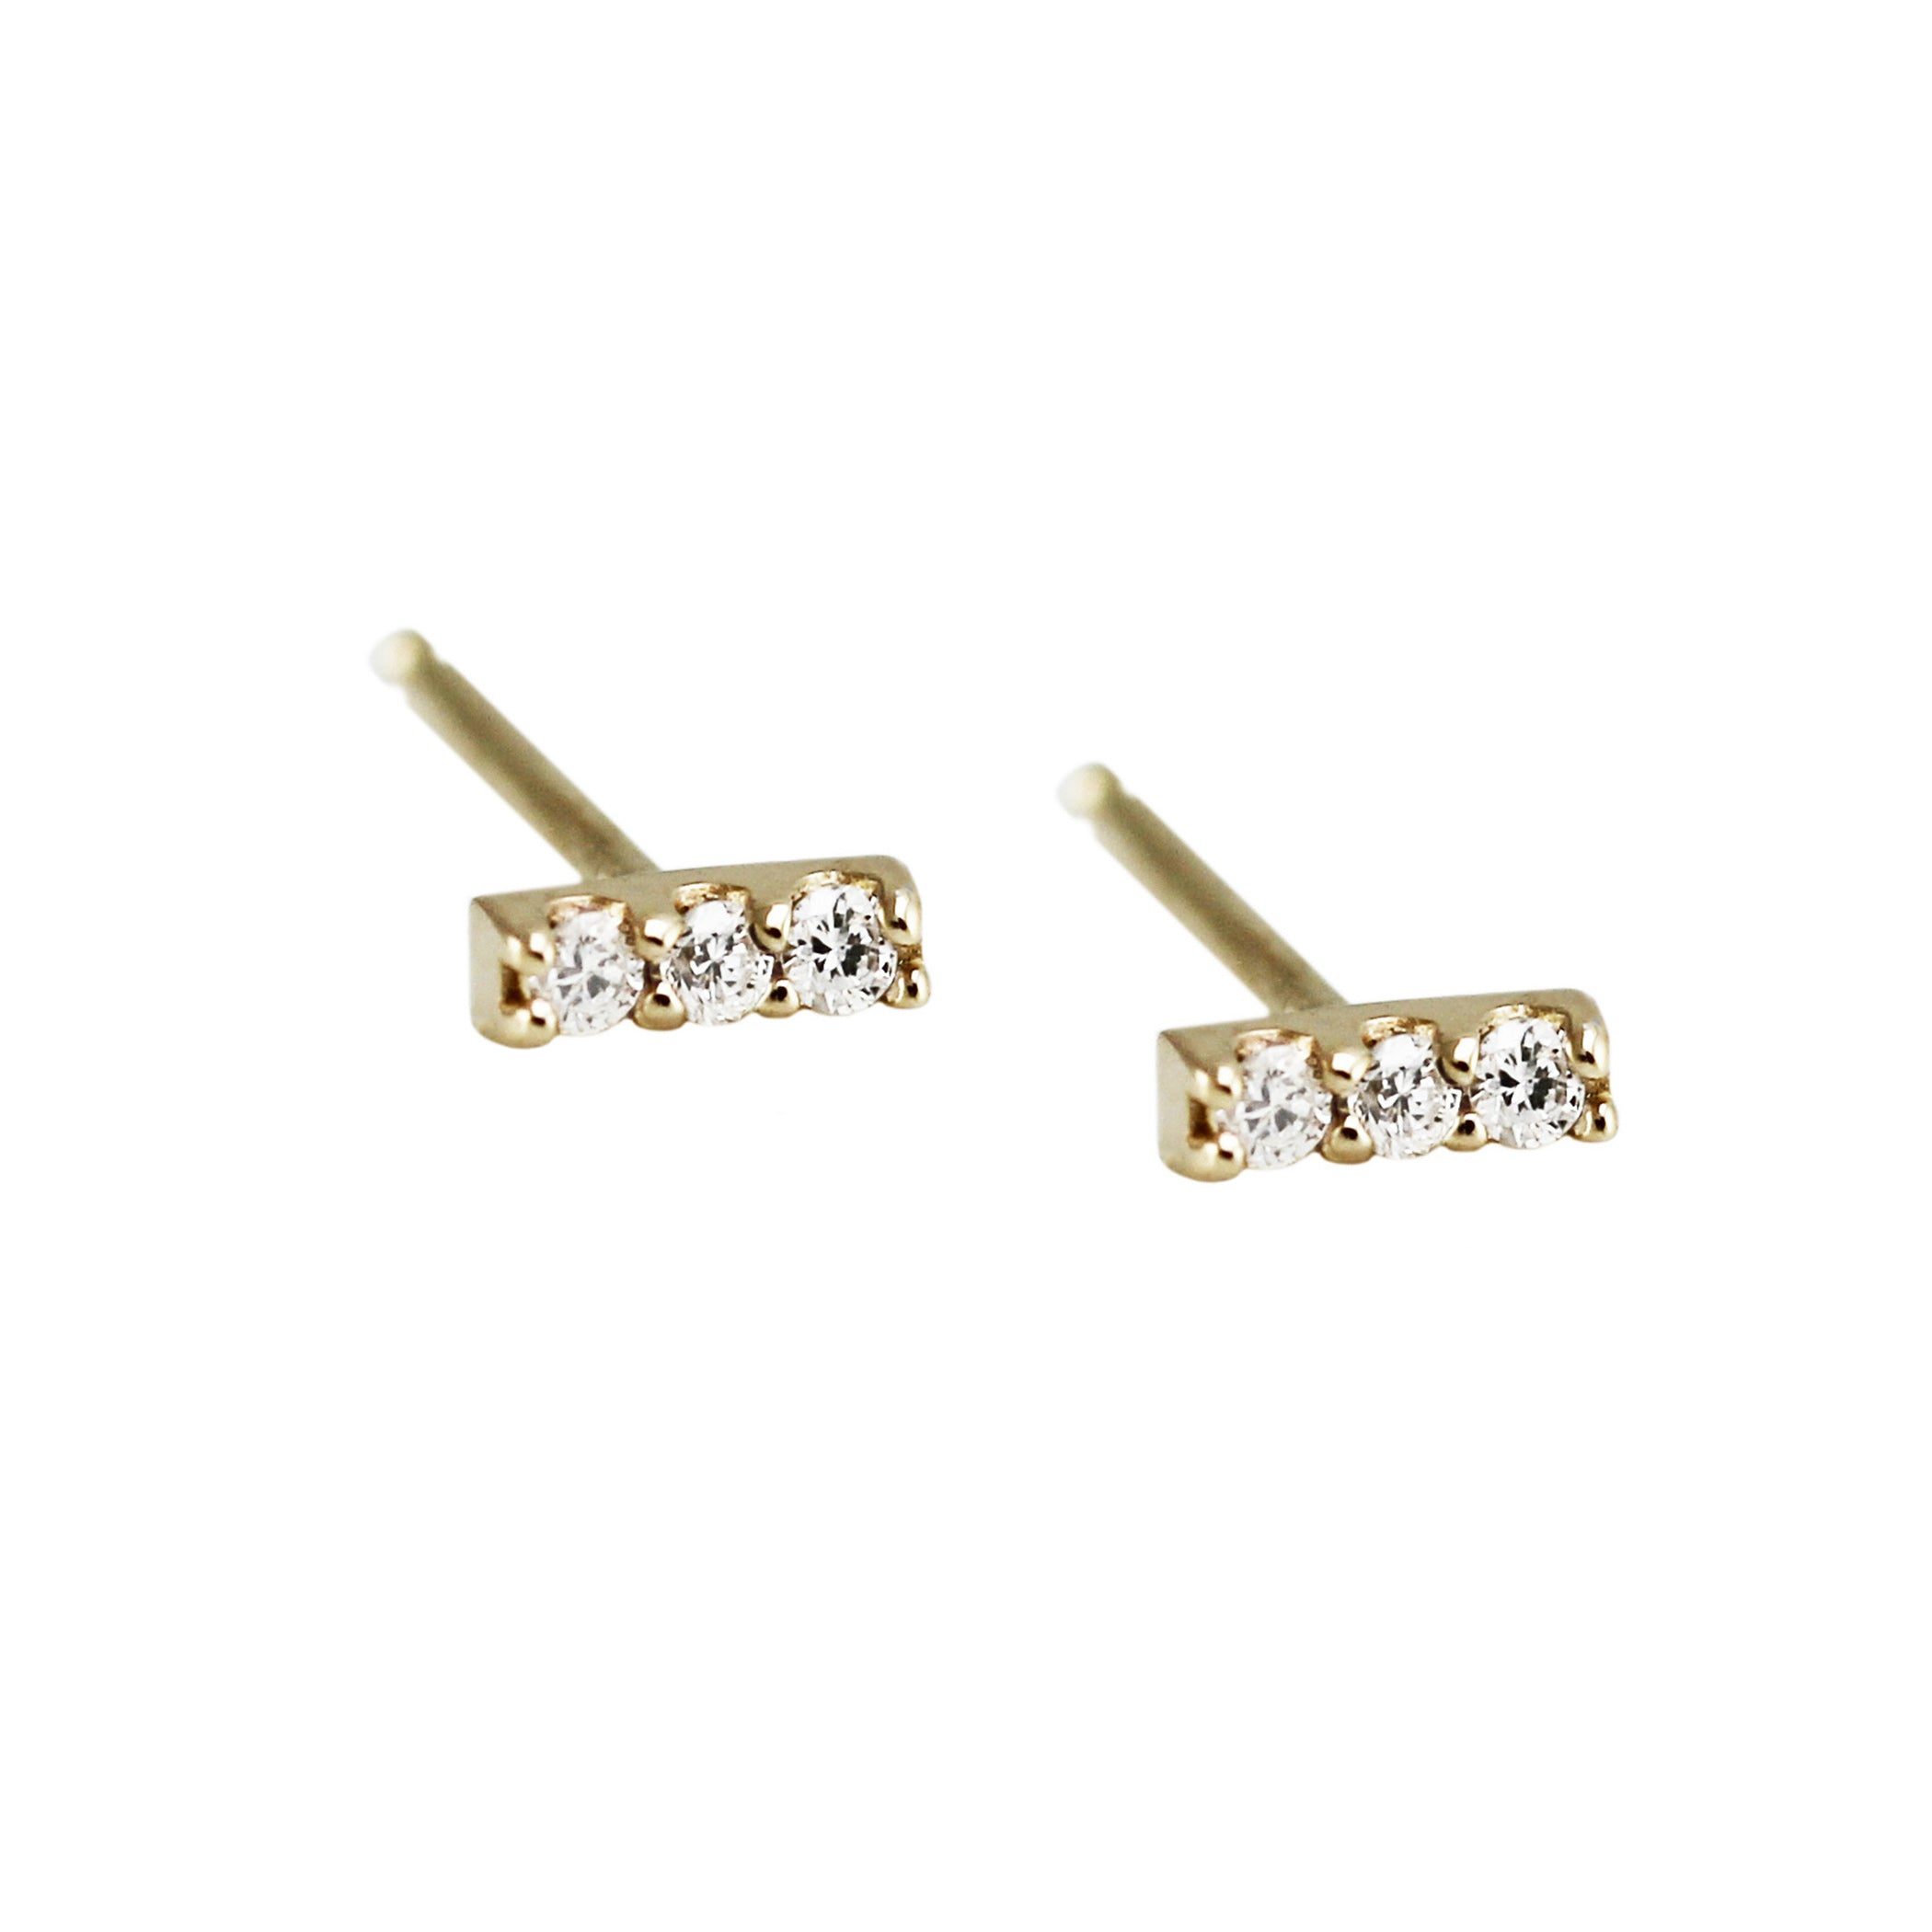 MINI PAVE DIAMOND STUDS